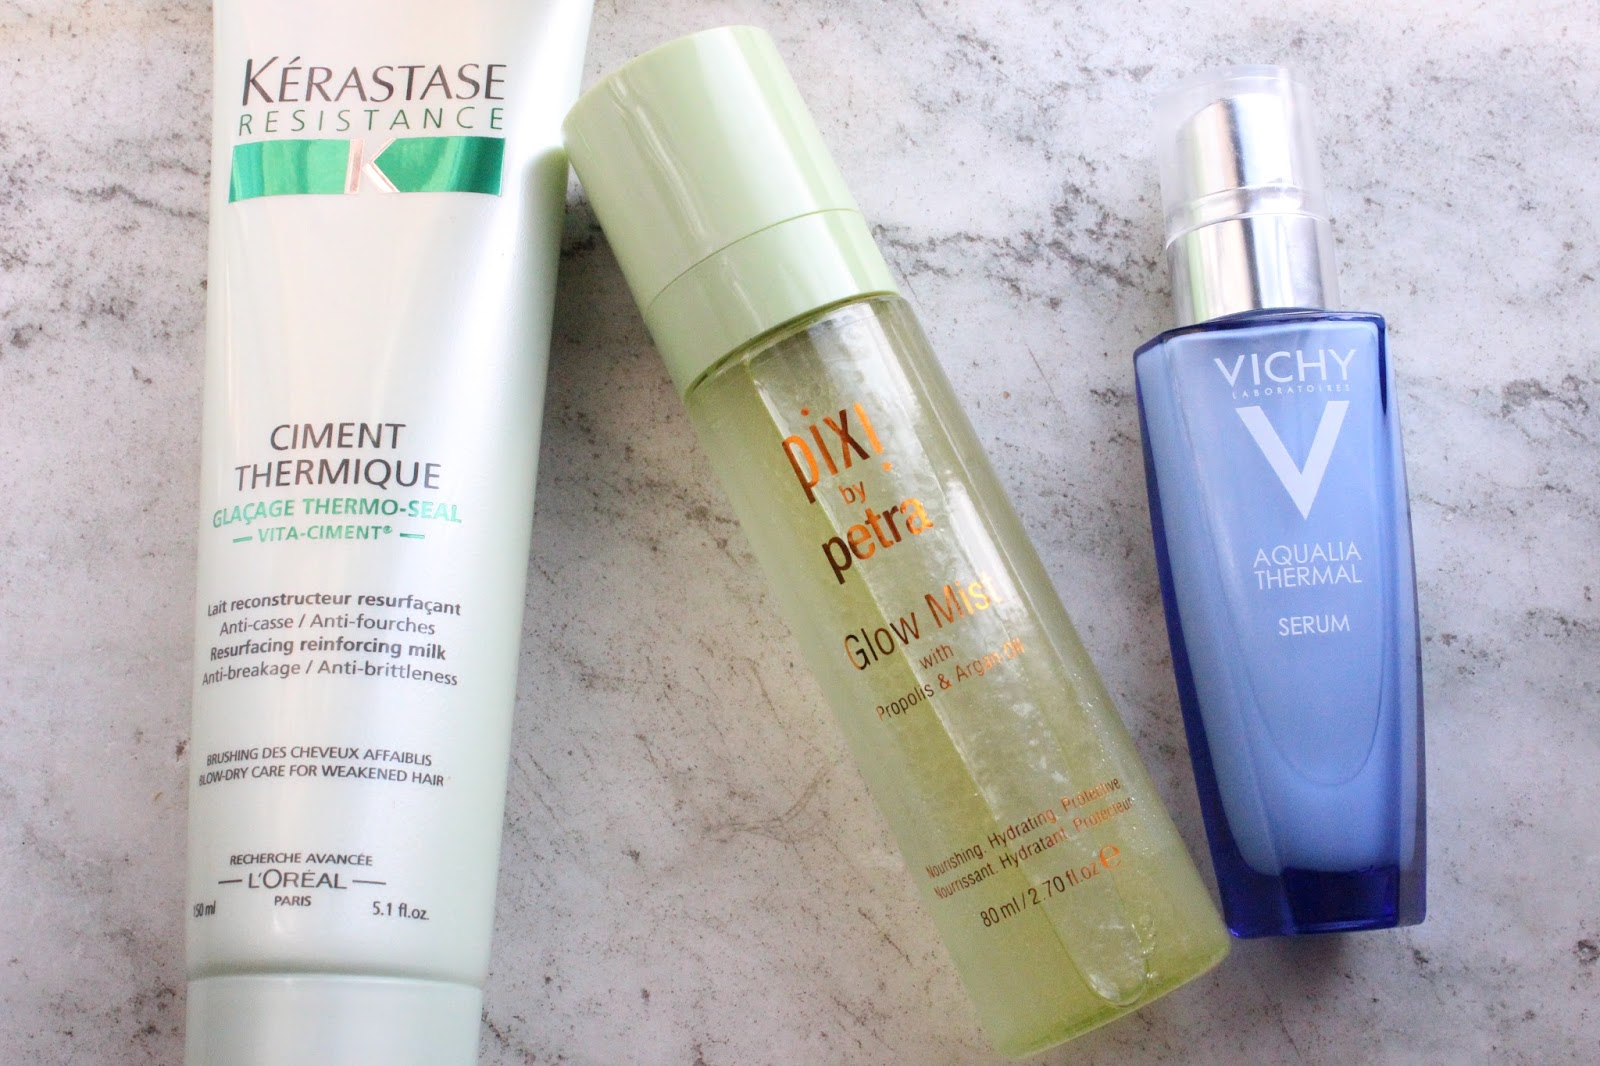 New Beauty On Trial - Kerastase Ciment Thermique, Pixi Glow Tonic, Vichy Aqualia Thermal Serum